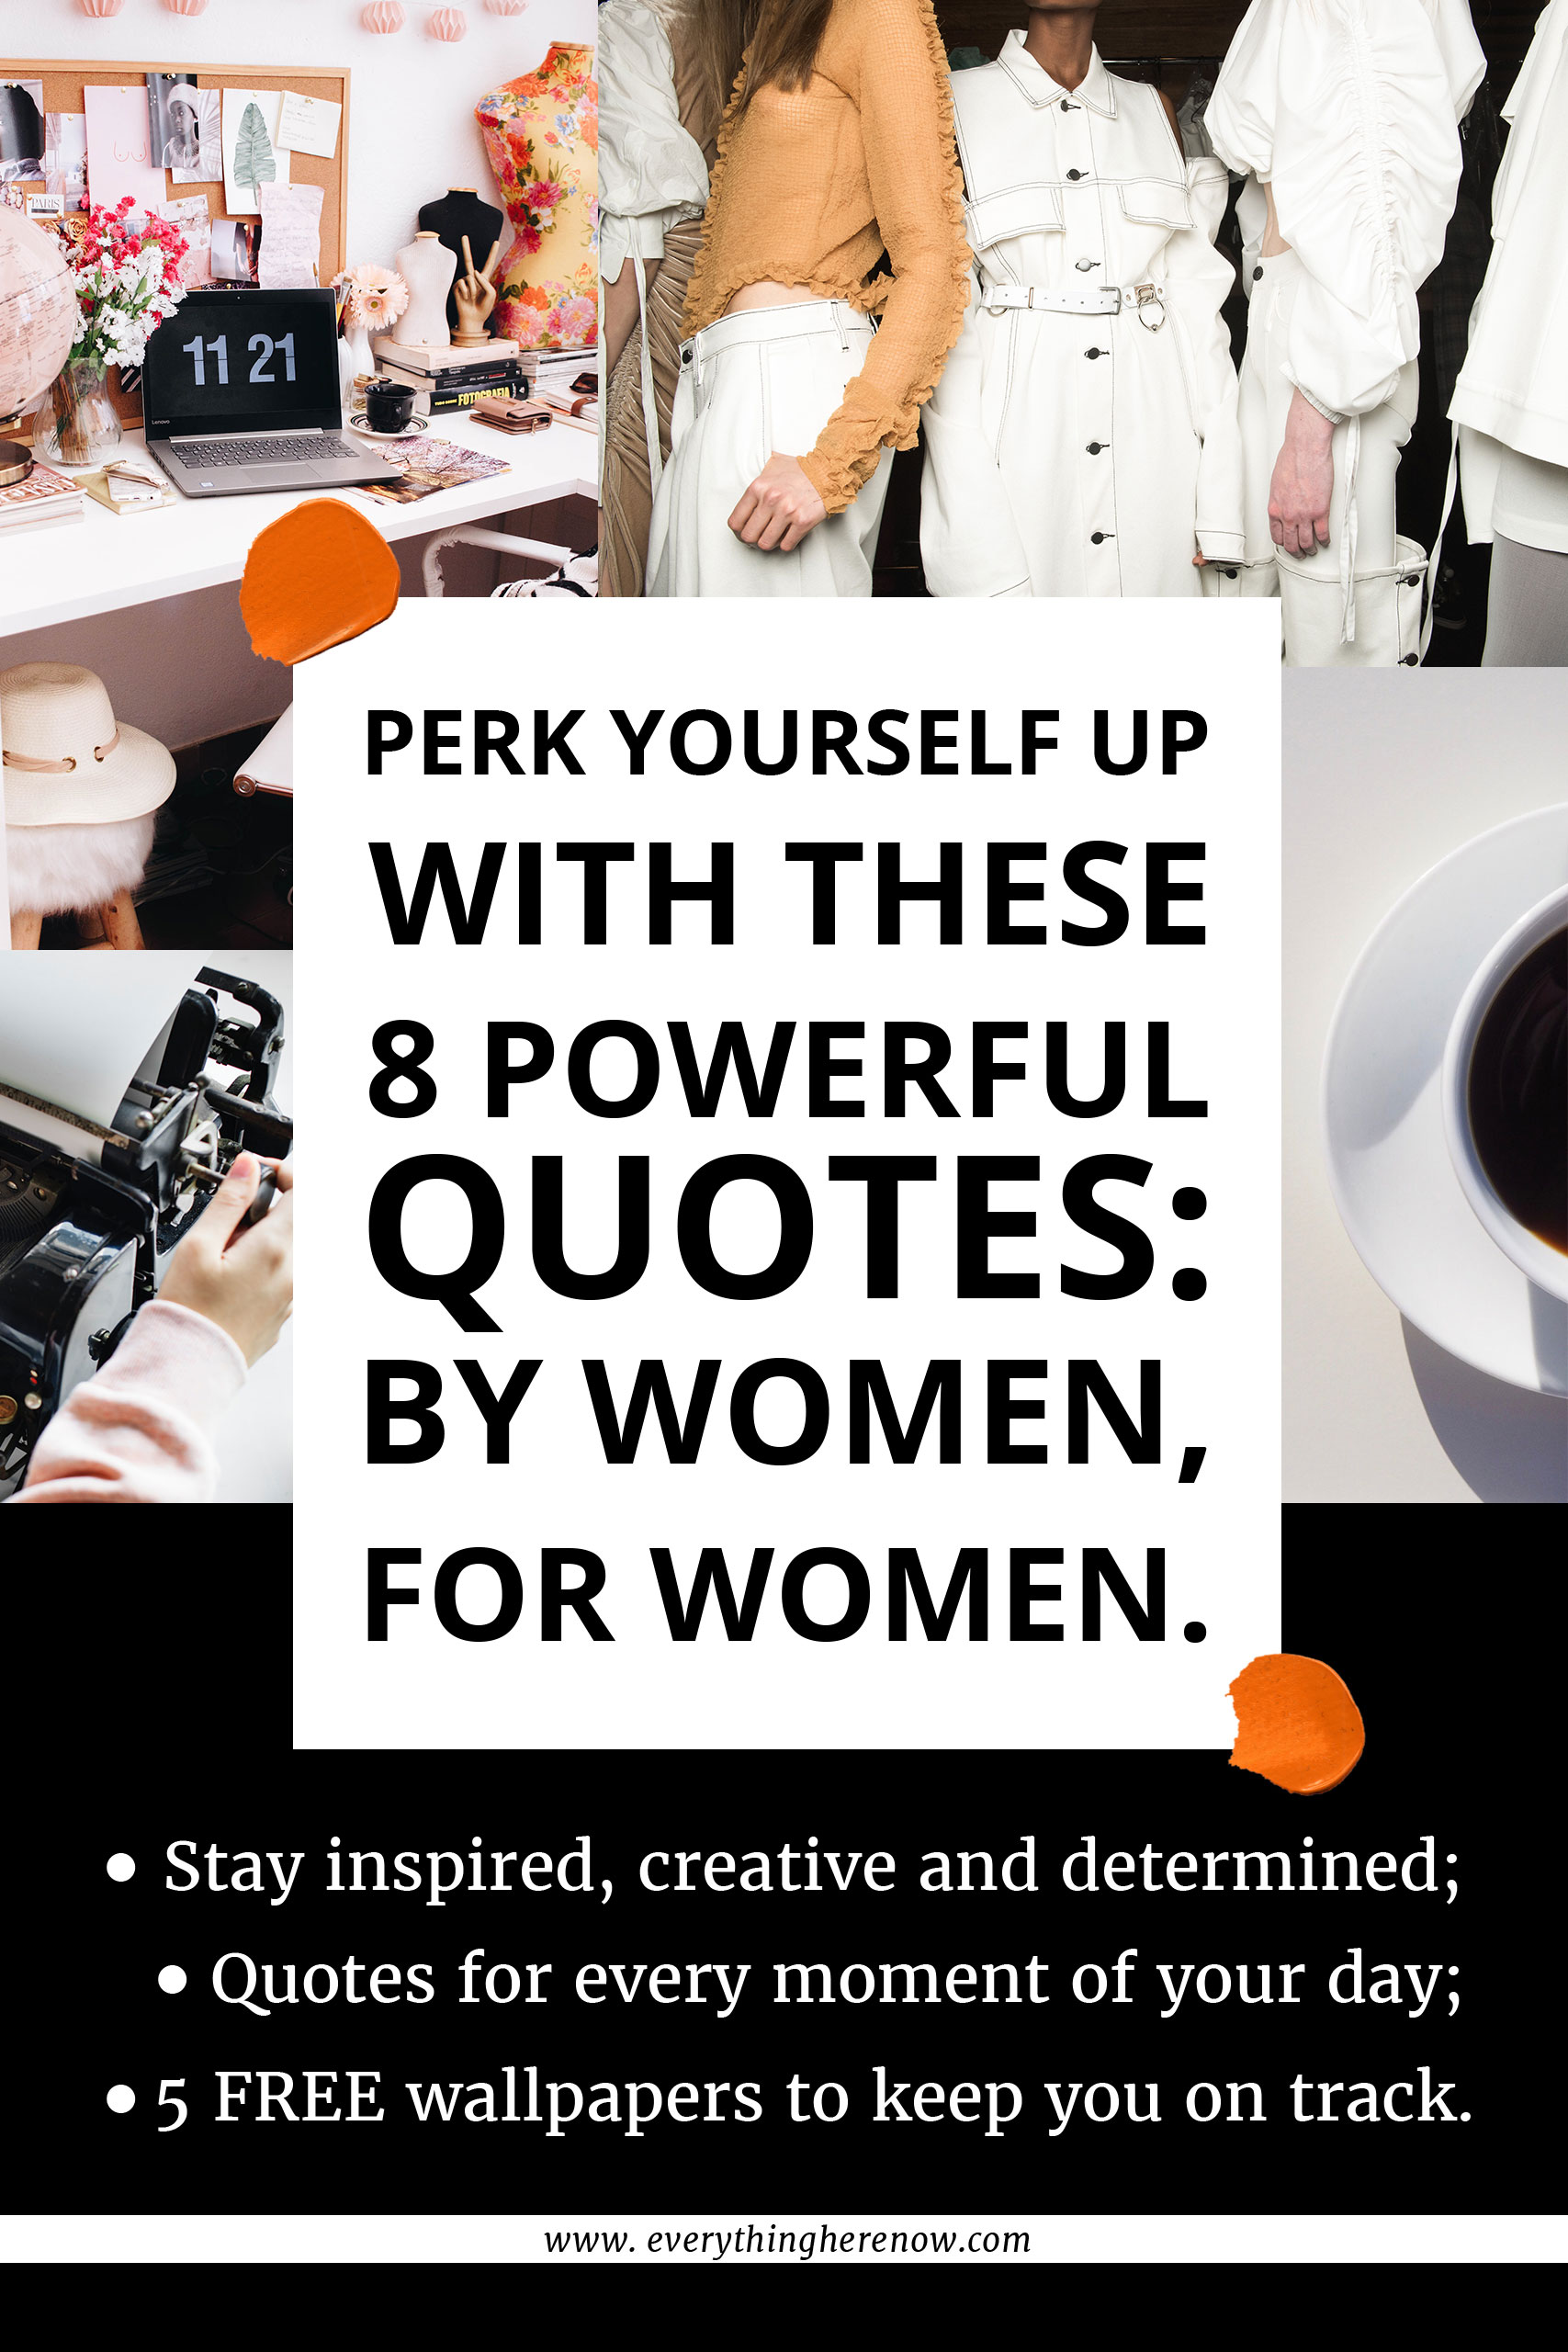 8 POWERFUL QUOTES FORM DETERMINED WOMEN: Discover powerful quotes for every moment of your day + 5 FREE wallpapers to match! – #quotes #inspiration #bossbabe #inspiringwords www.everythingherenow.com